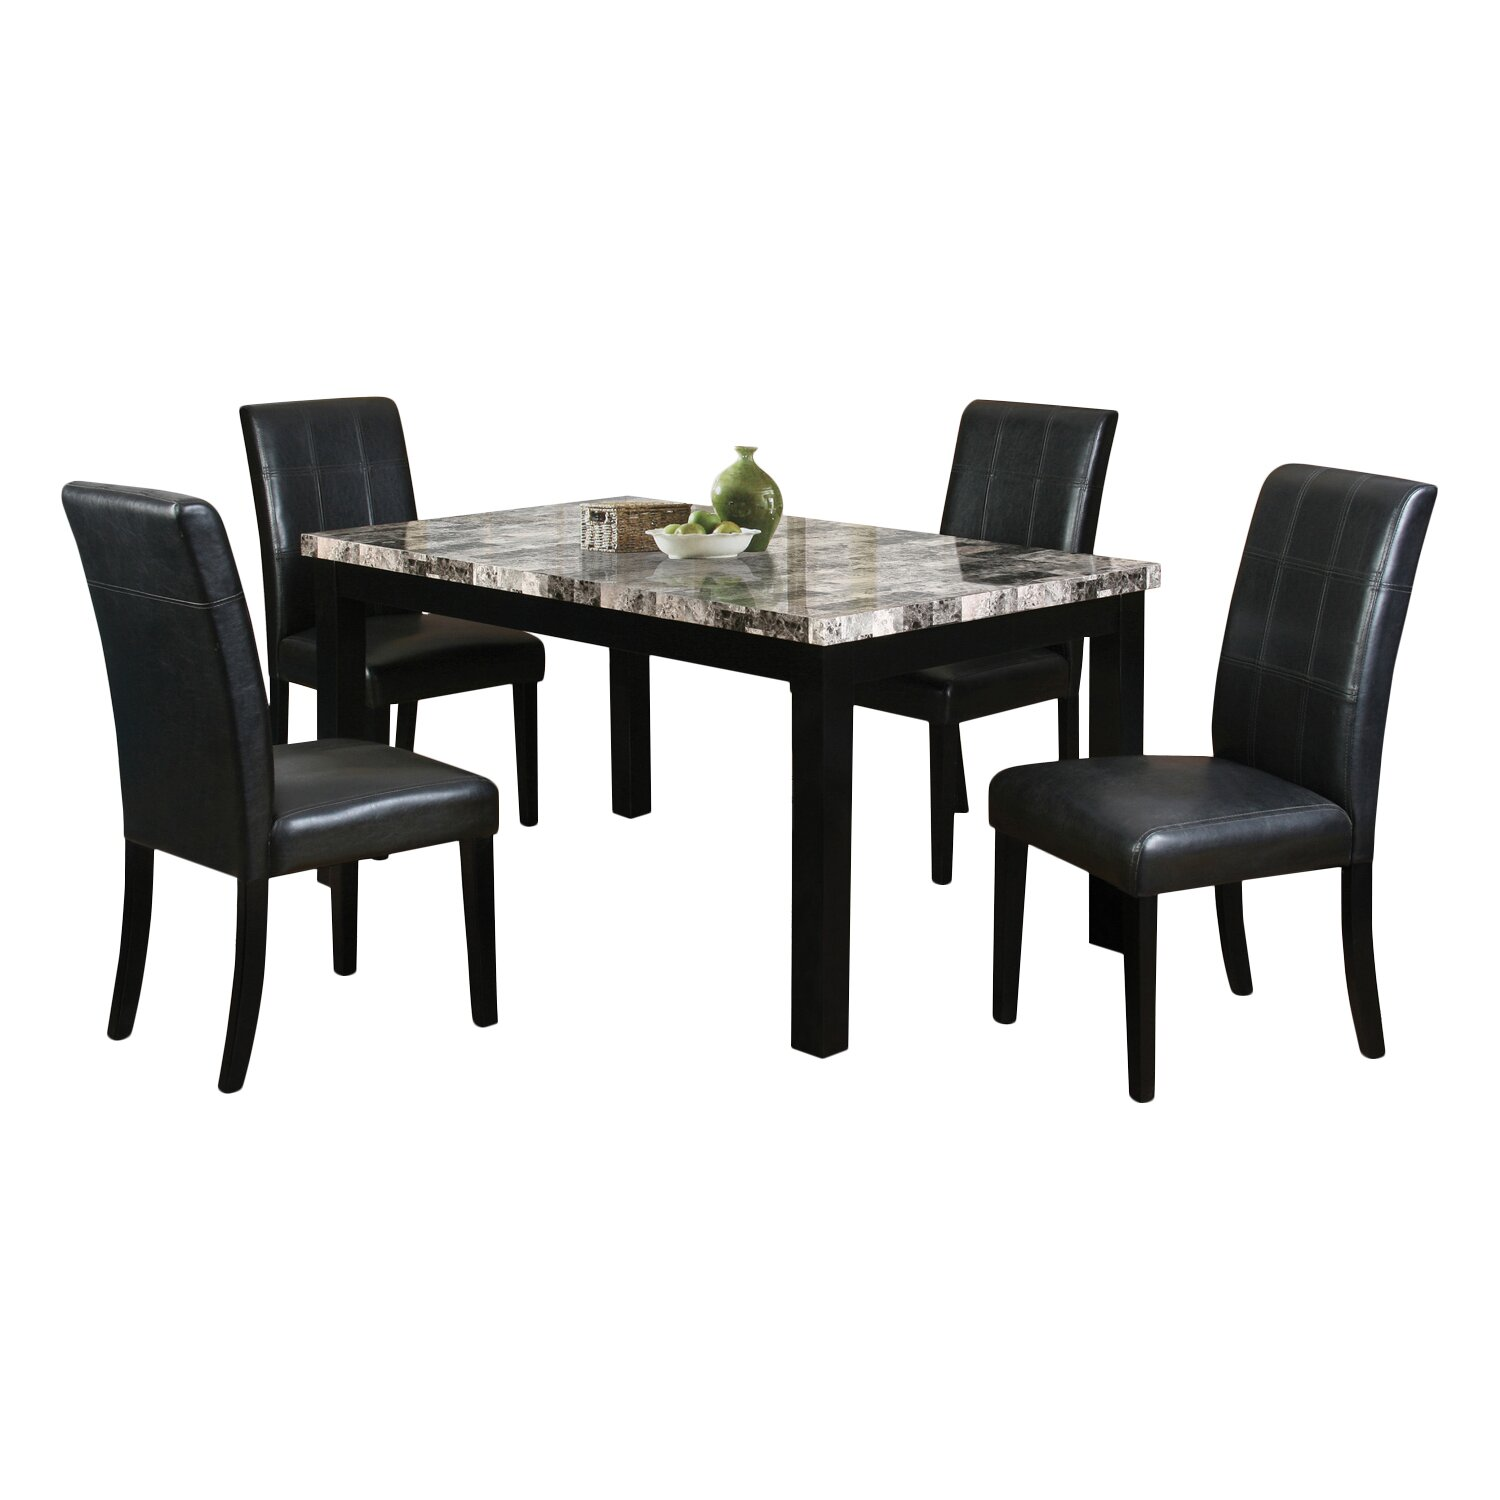 Latitude run cahill 5 piece dining set reviews for 5 piece dining room set under 200